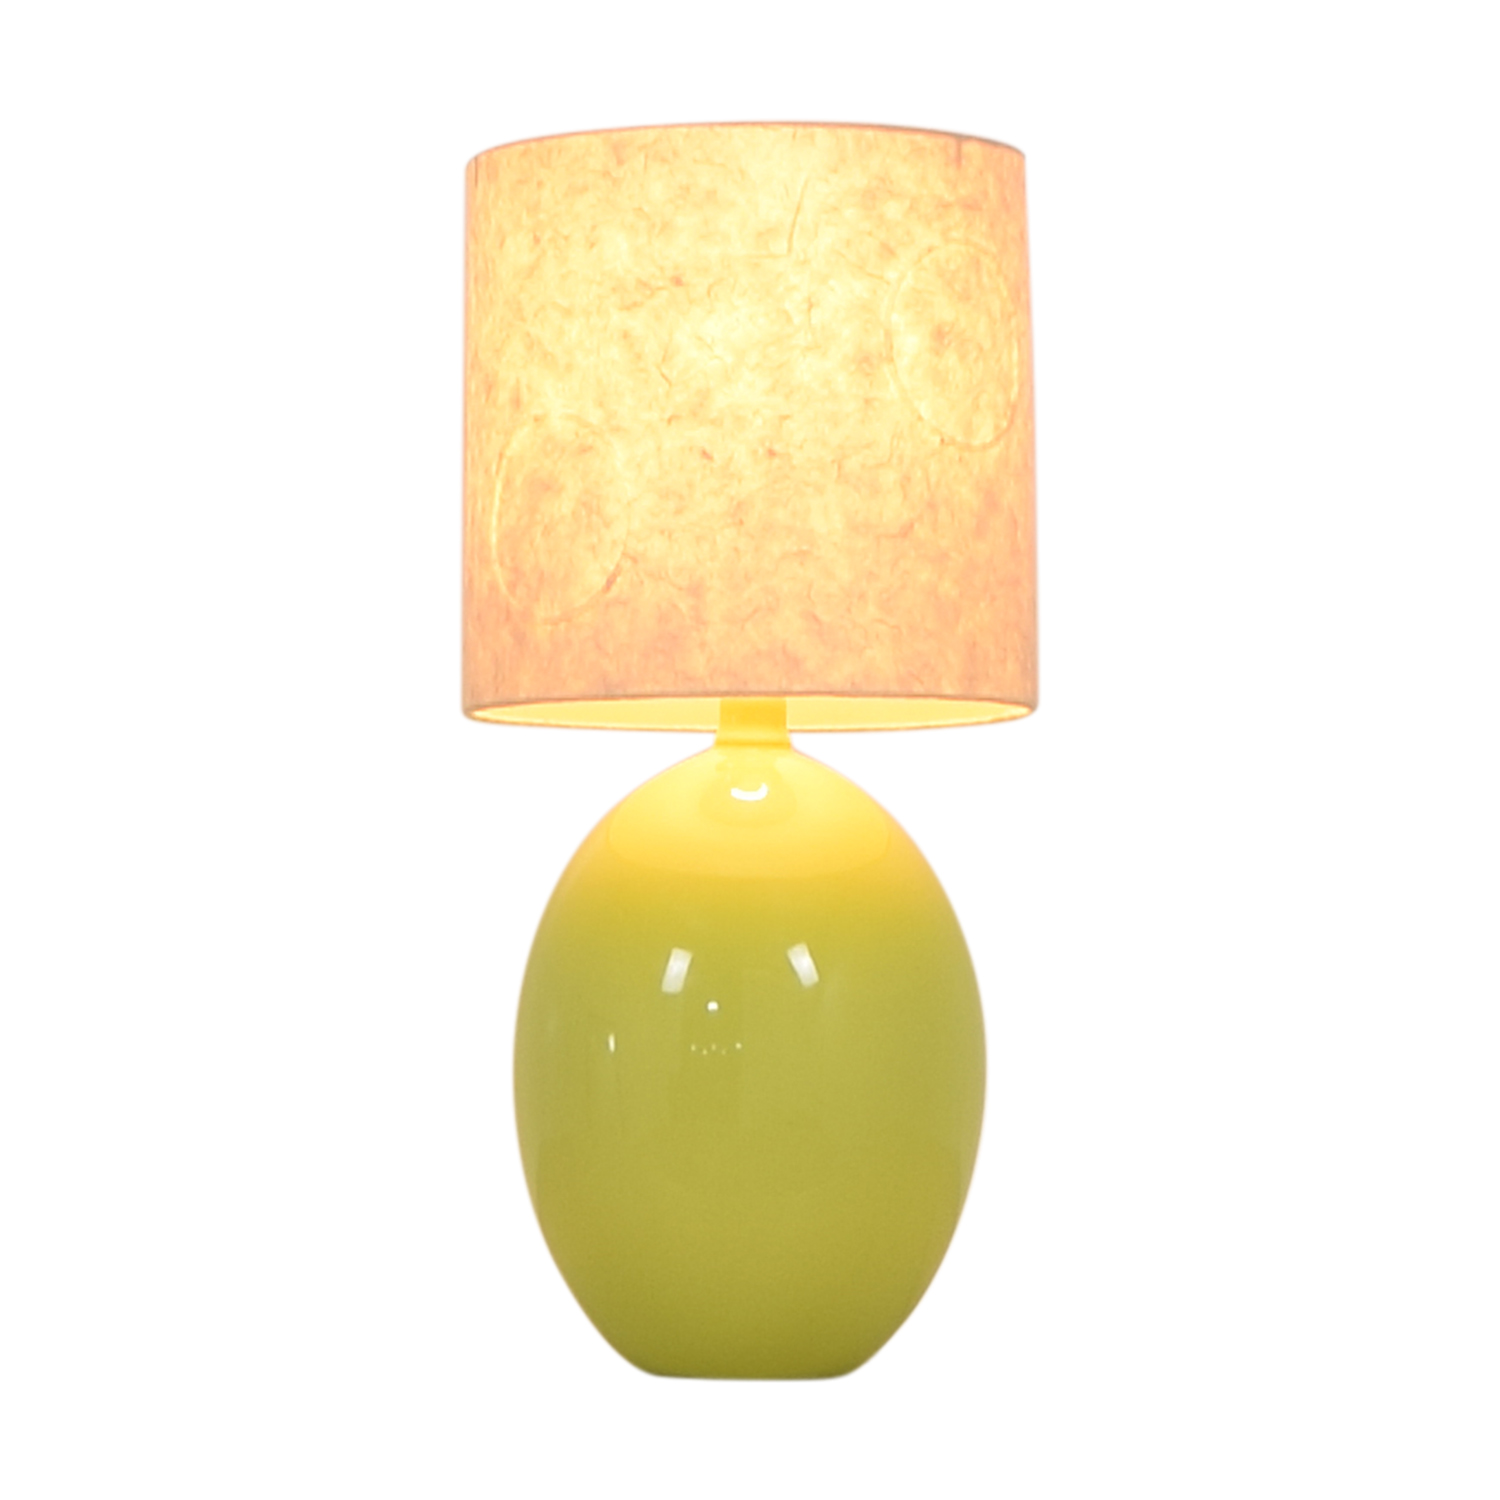 CB2 CB2 Green Table Lamp used